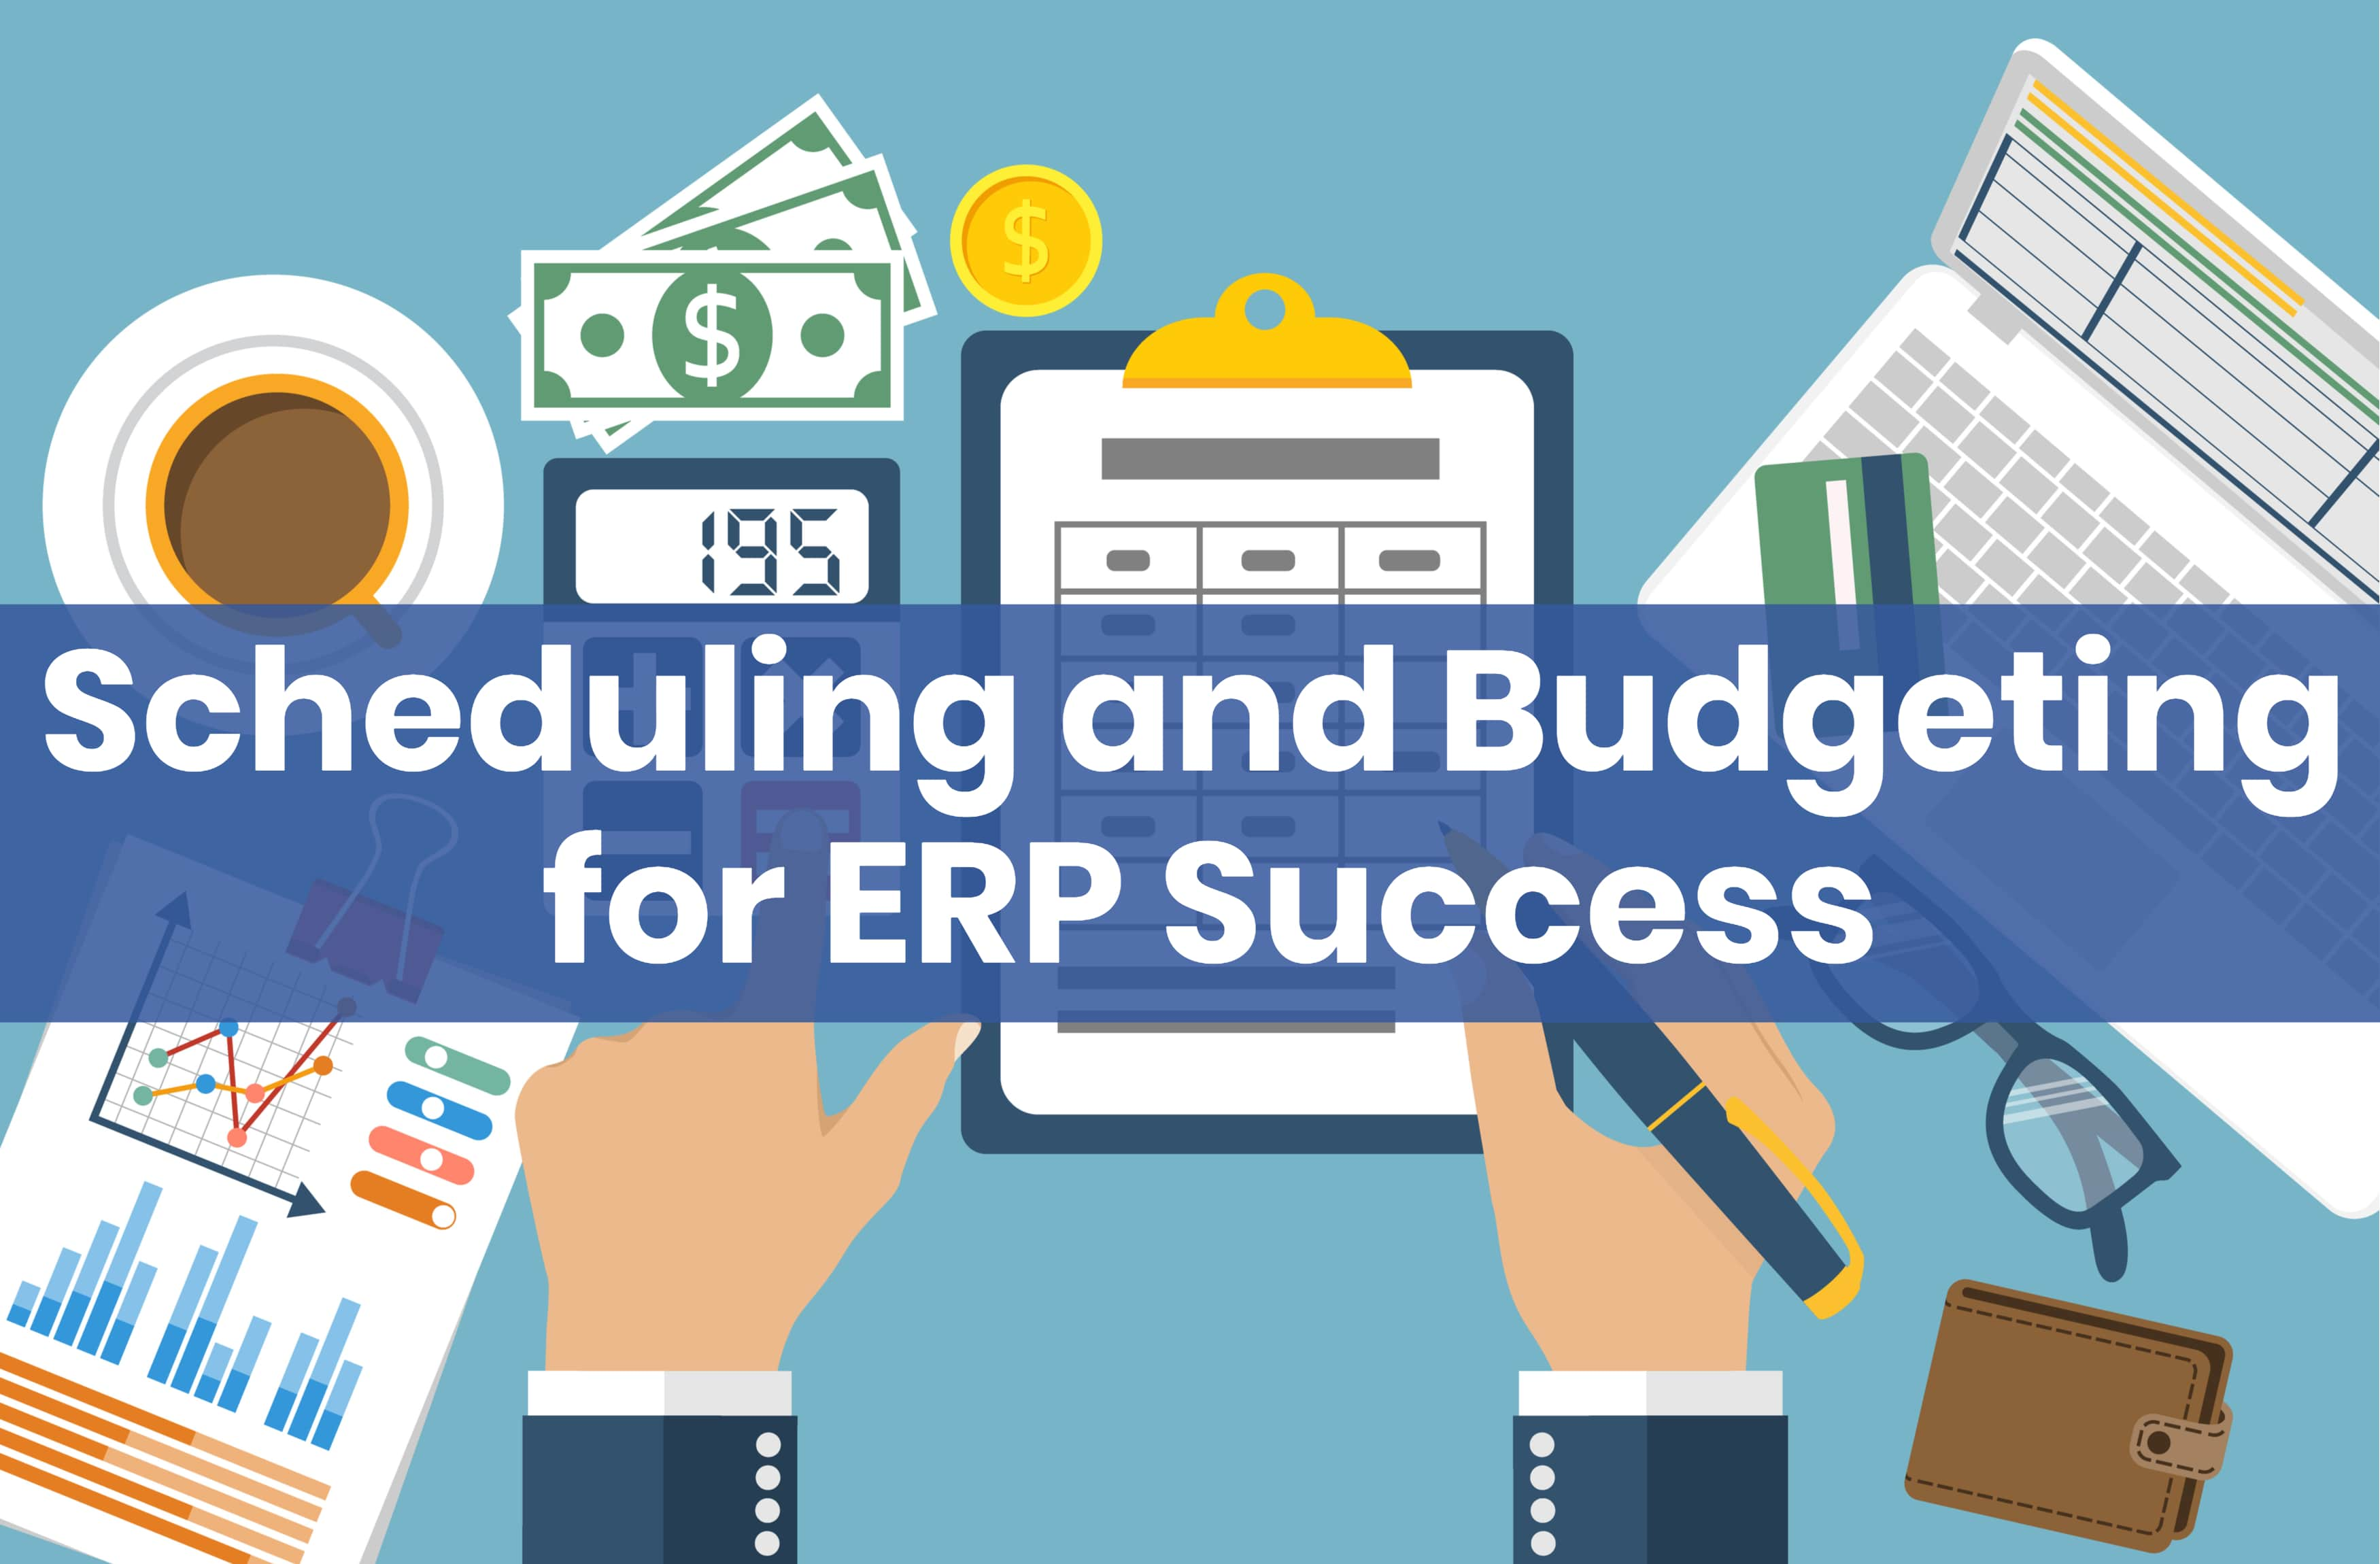 Scheduling and Budgeting for Your ERP Implementation